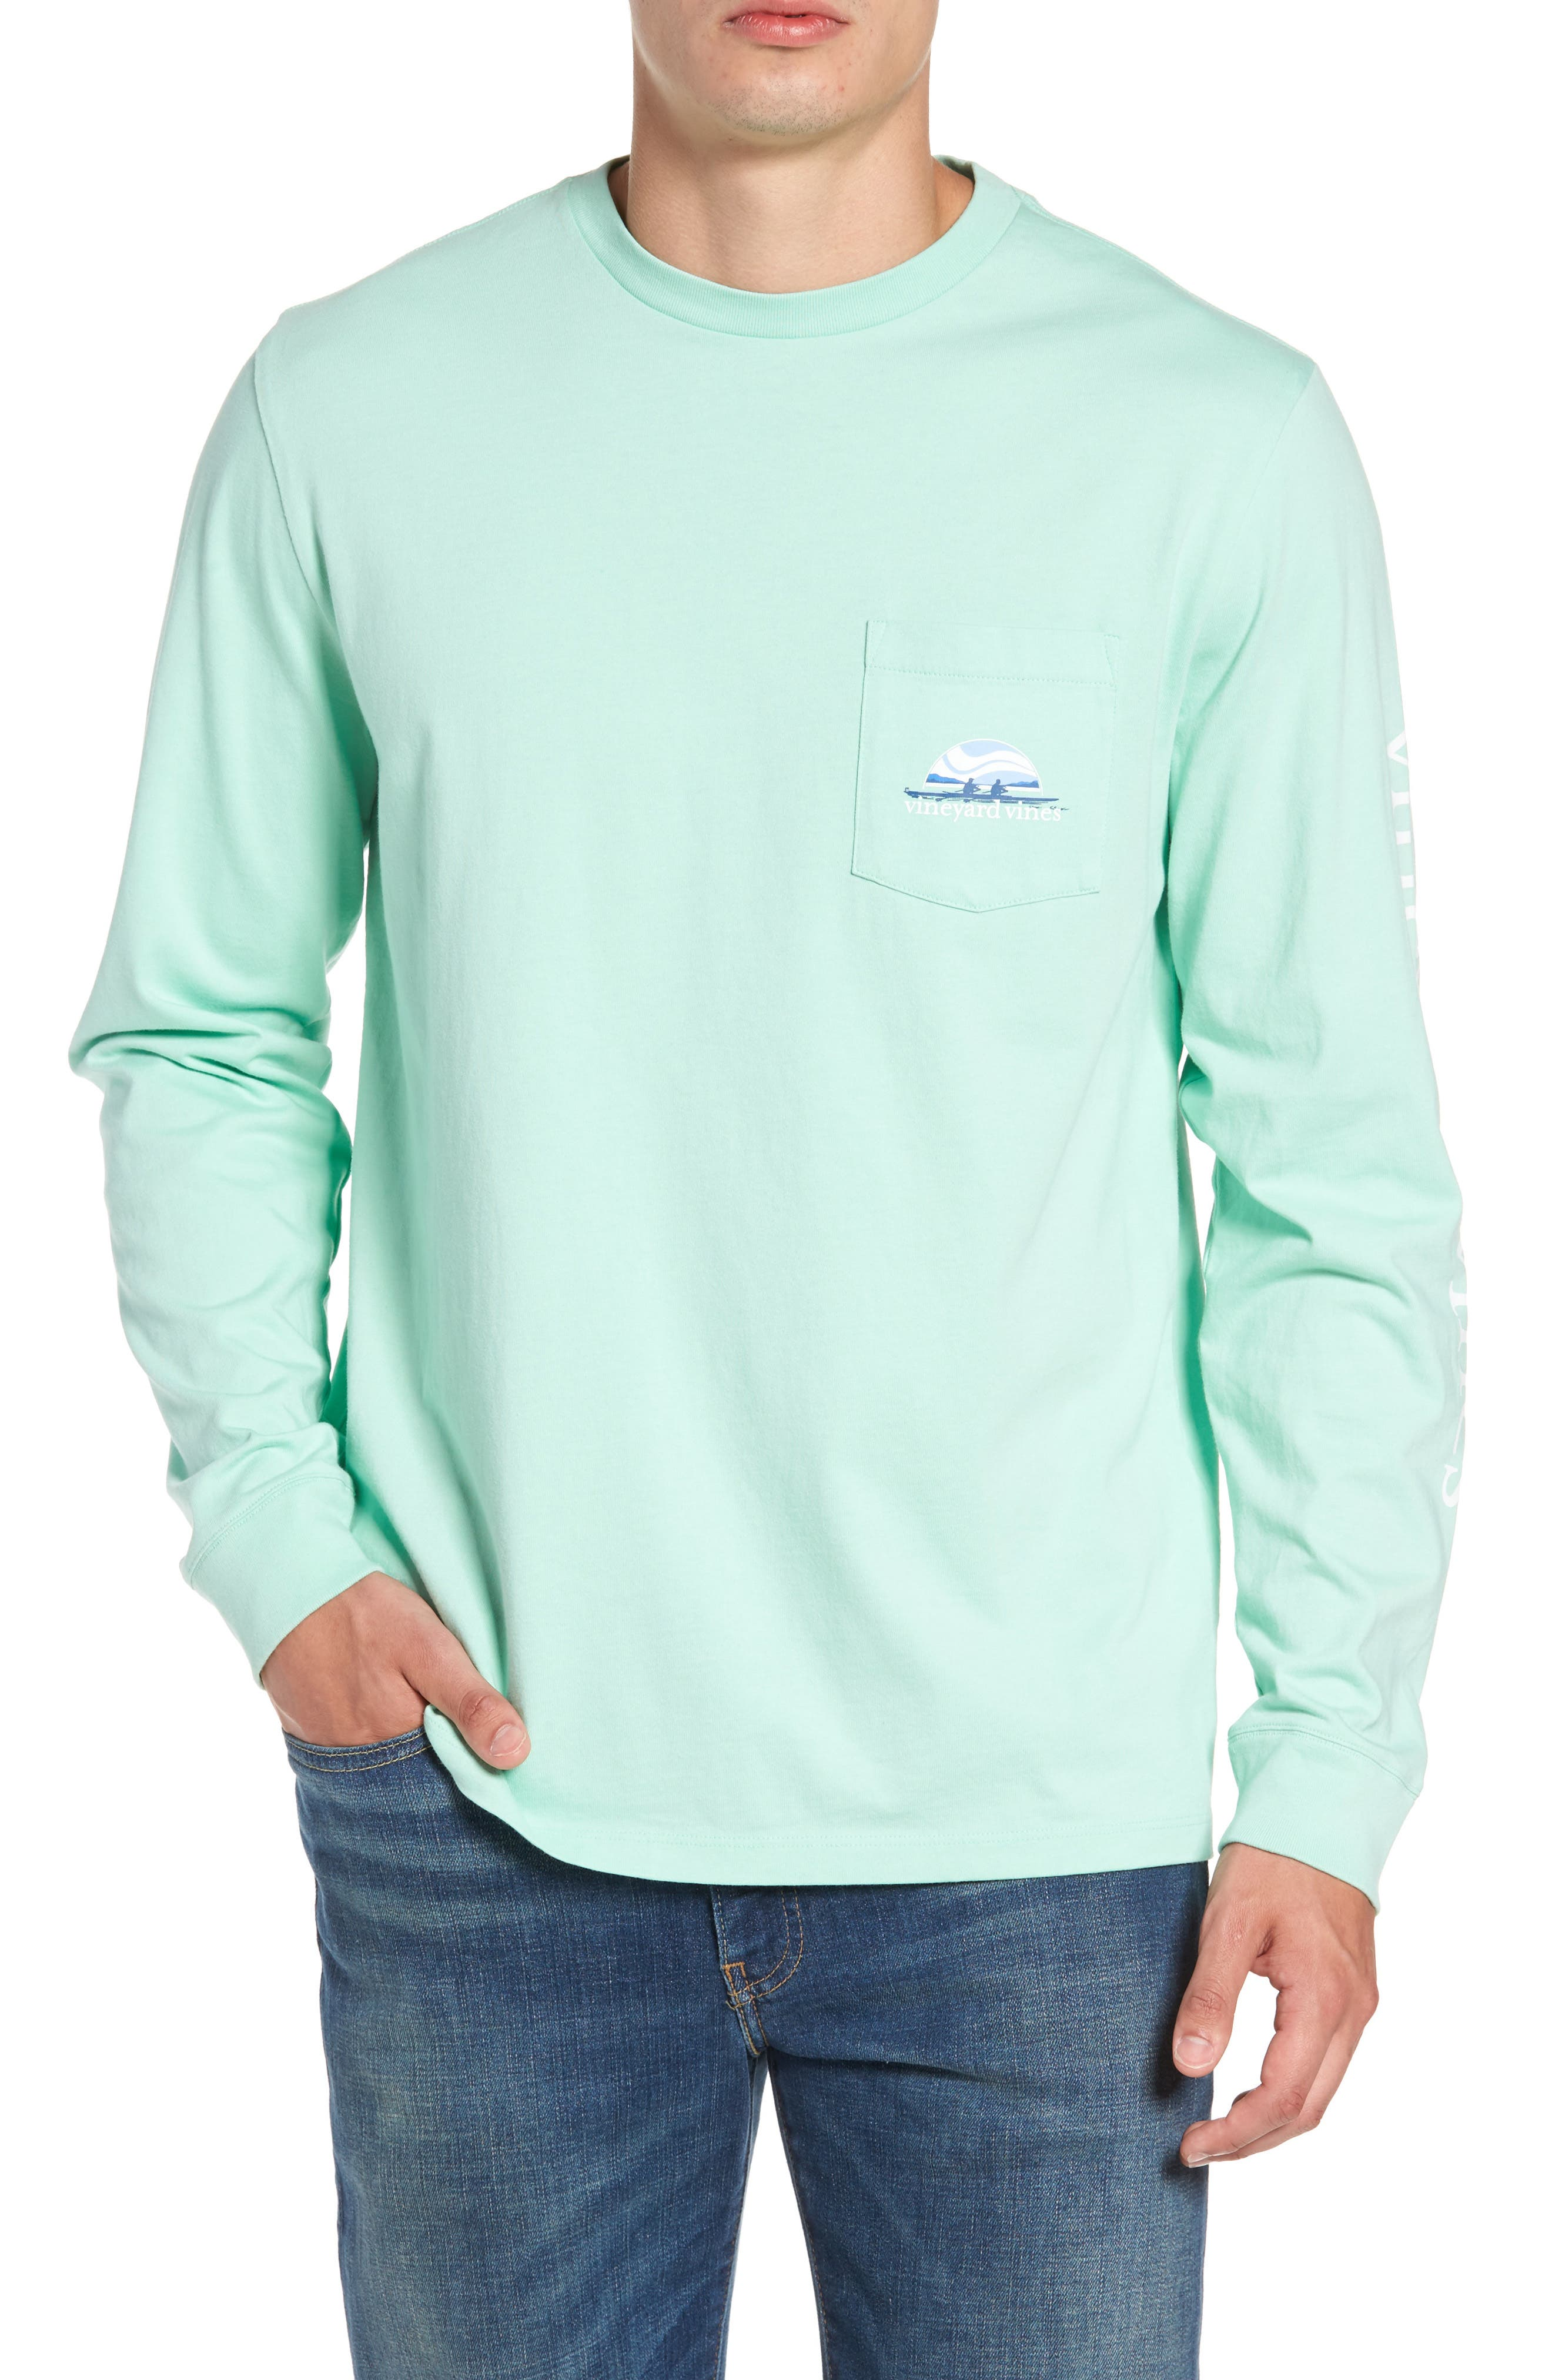 Rowing Graphic T-Shirt,                         Main,                         color, 343